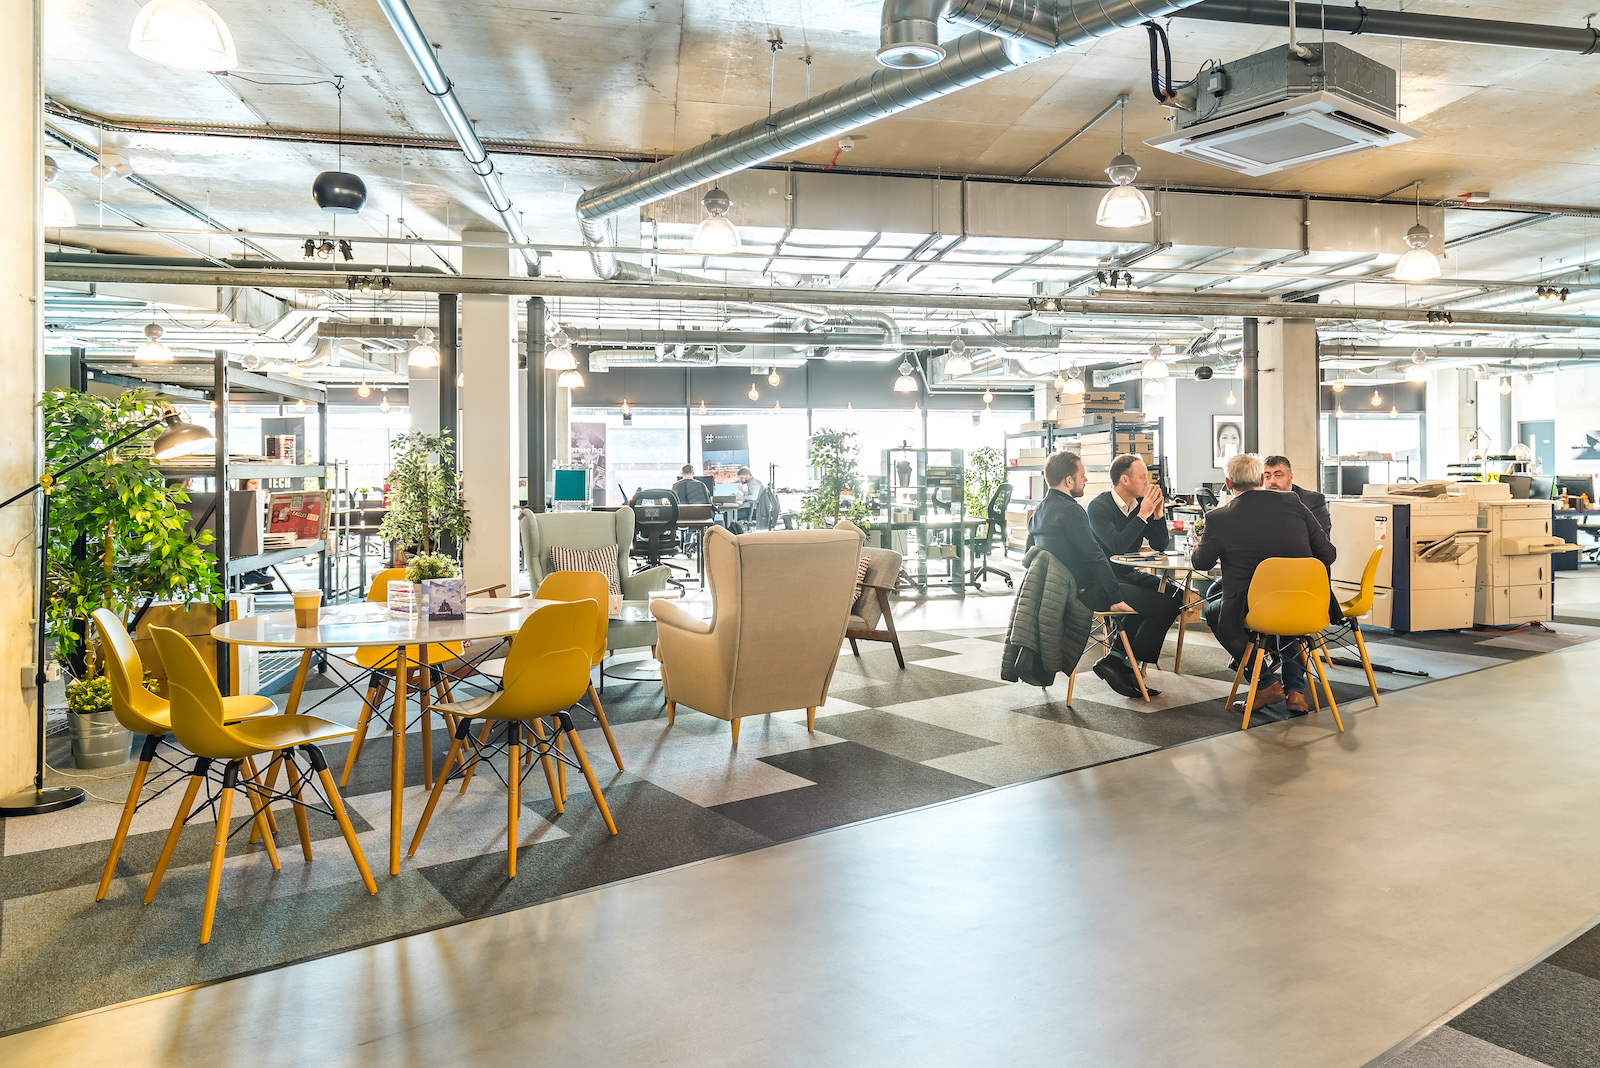 Can Office Design Reduce Stress and Increase Productivity?